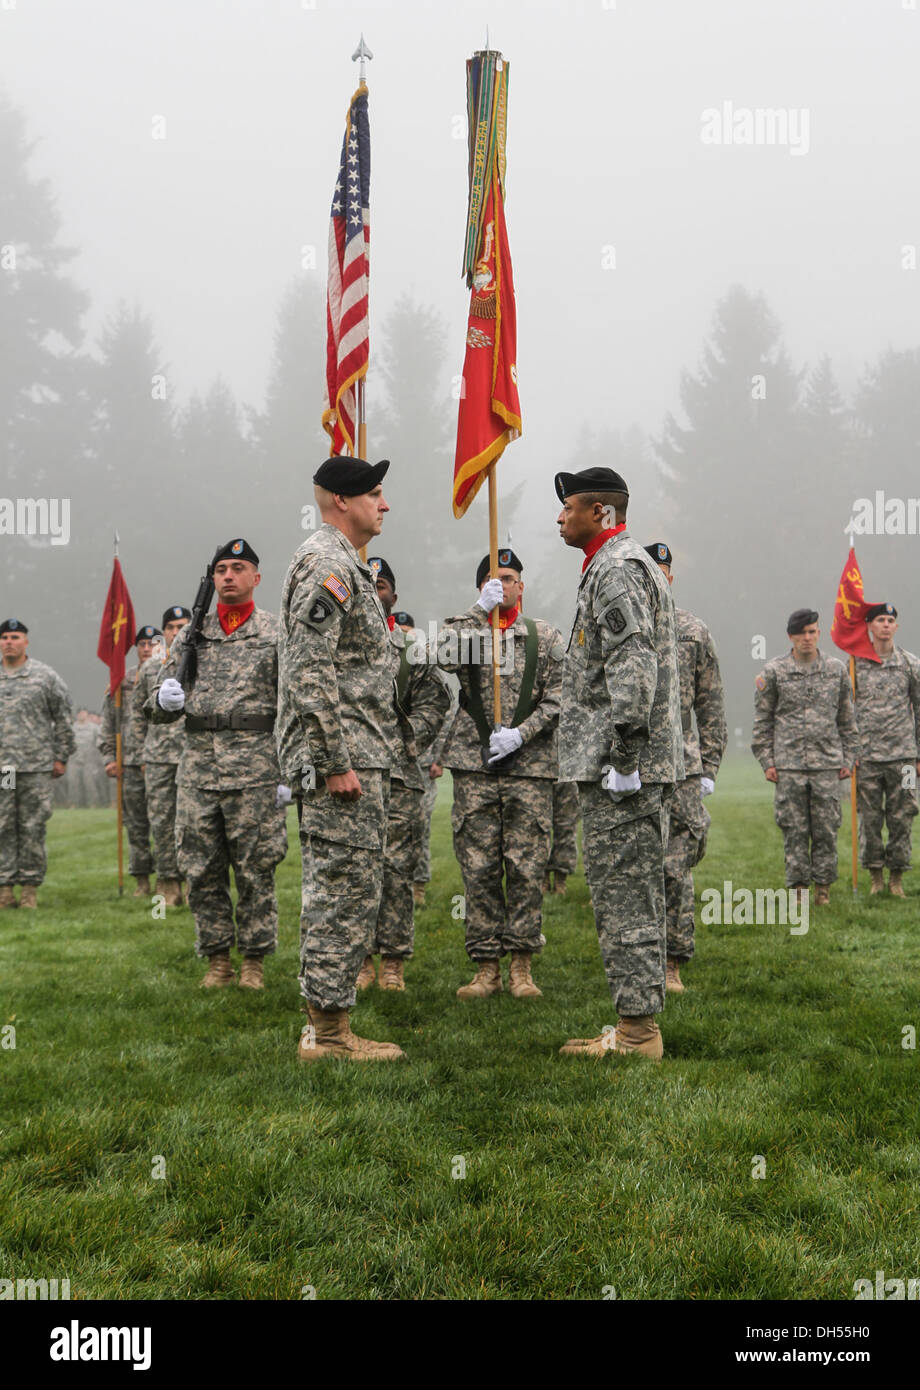 Lt. Col. Alan R. Wagner, the battalion commander for 1st Battalion, 377th Field Artillery Regiment, 17th Fires Brigade, 7th Infantry Division, prepares to case the unit colors alongside Command Sgt. Maj. Walter D. Overton, the 1-377 FA command sergeant ma - Stock Image